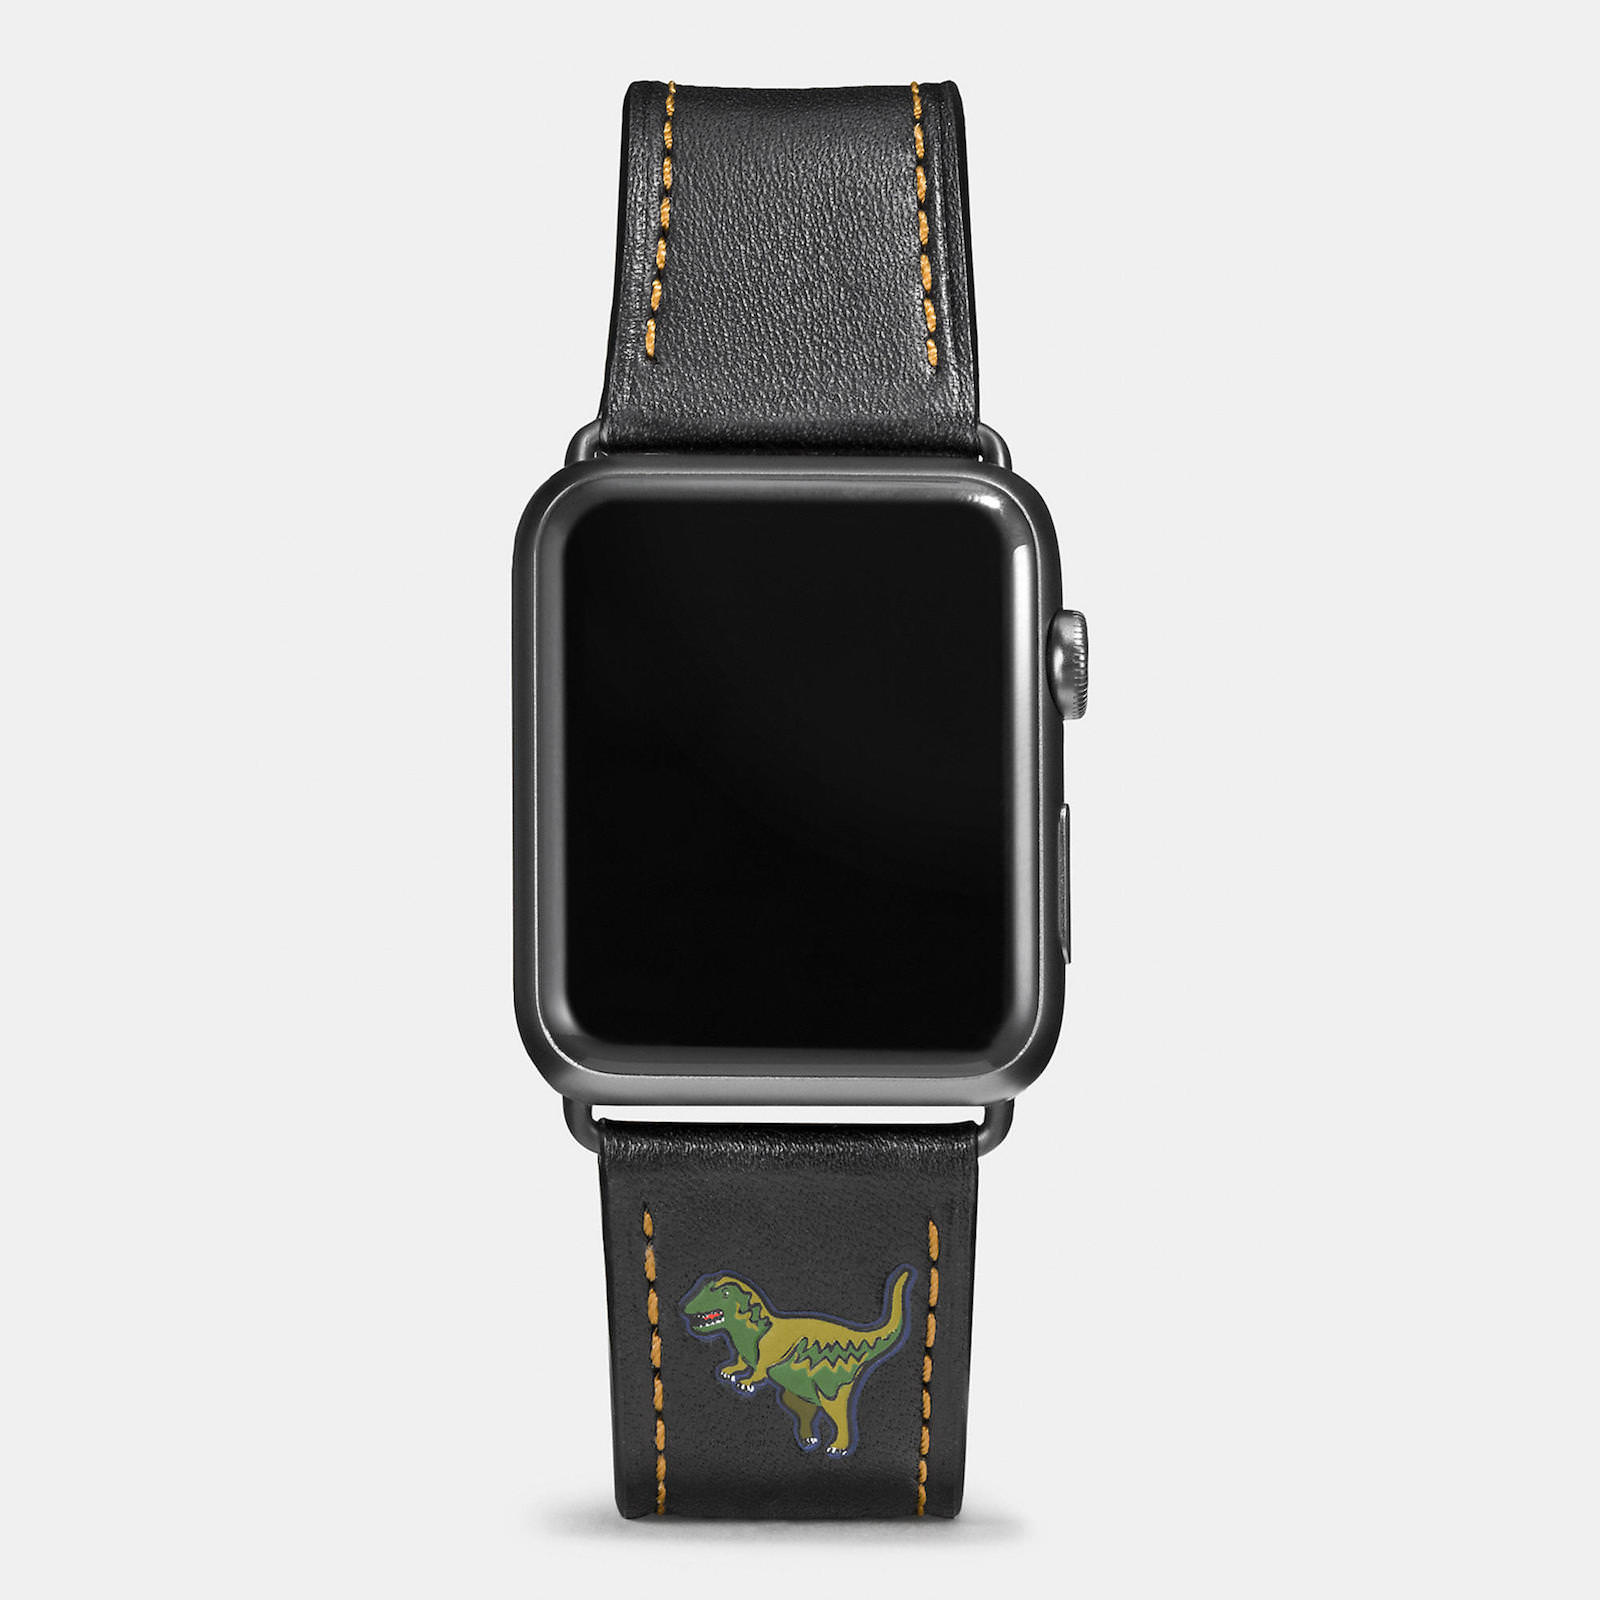 Apple-Watch-Coach-Band-Autumn-Season-8.jpeg